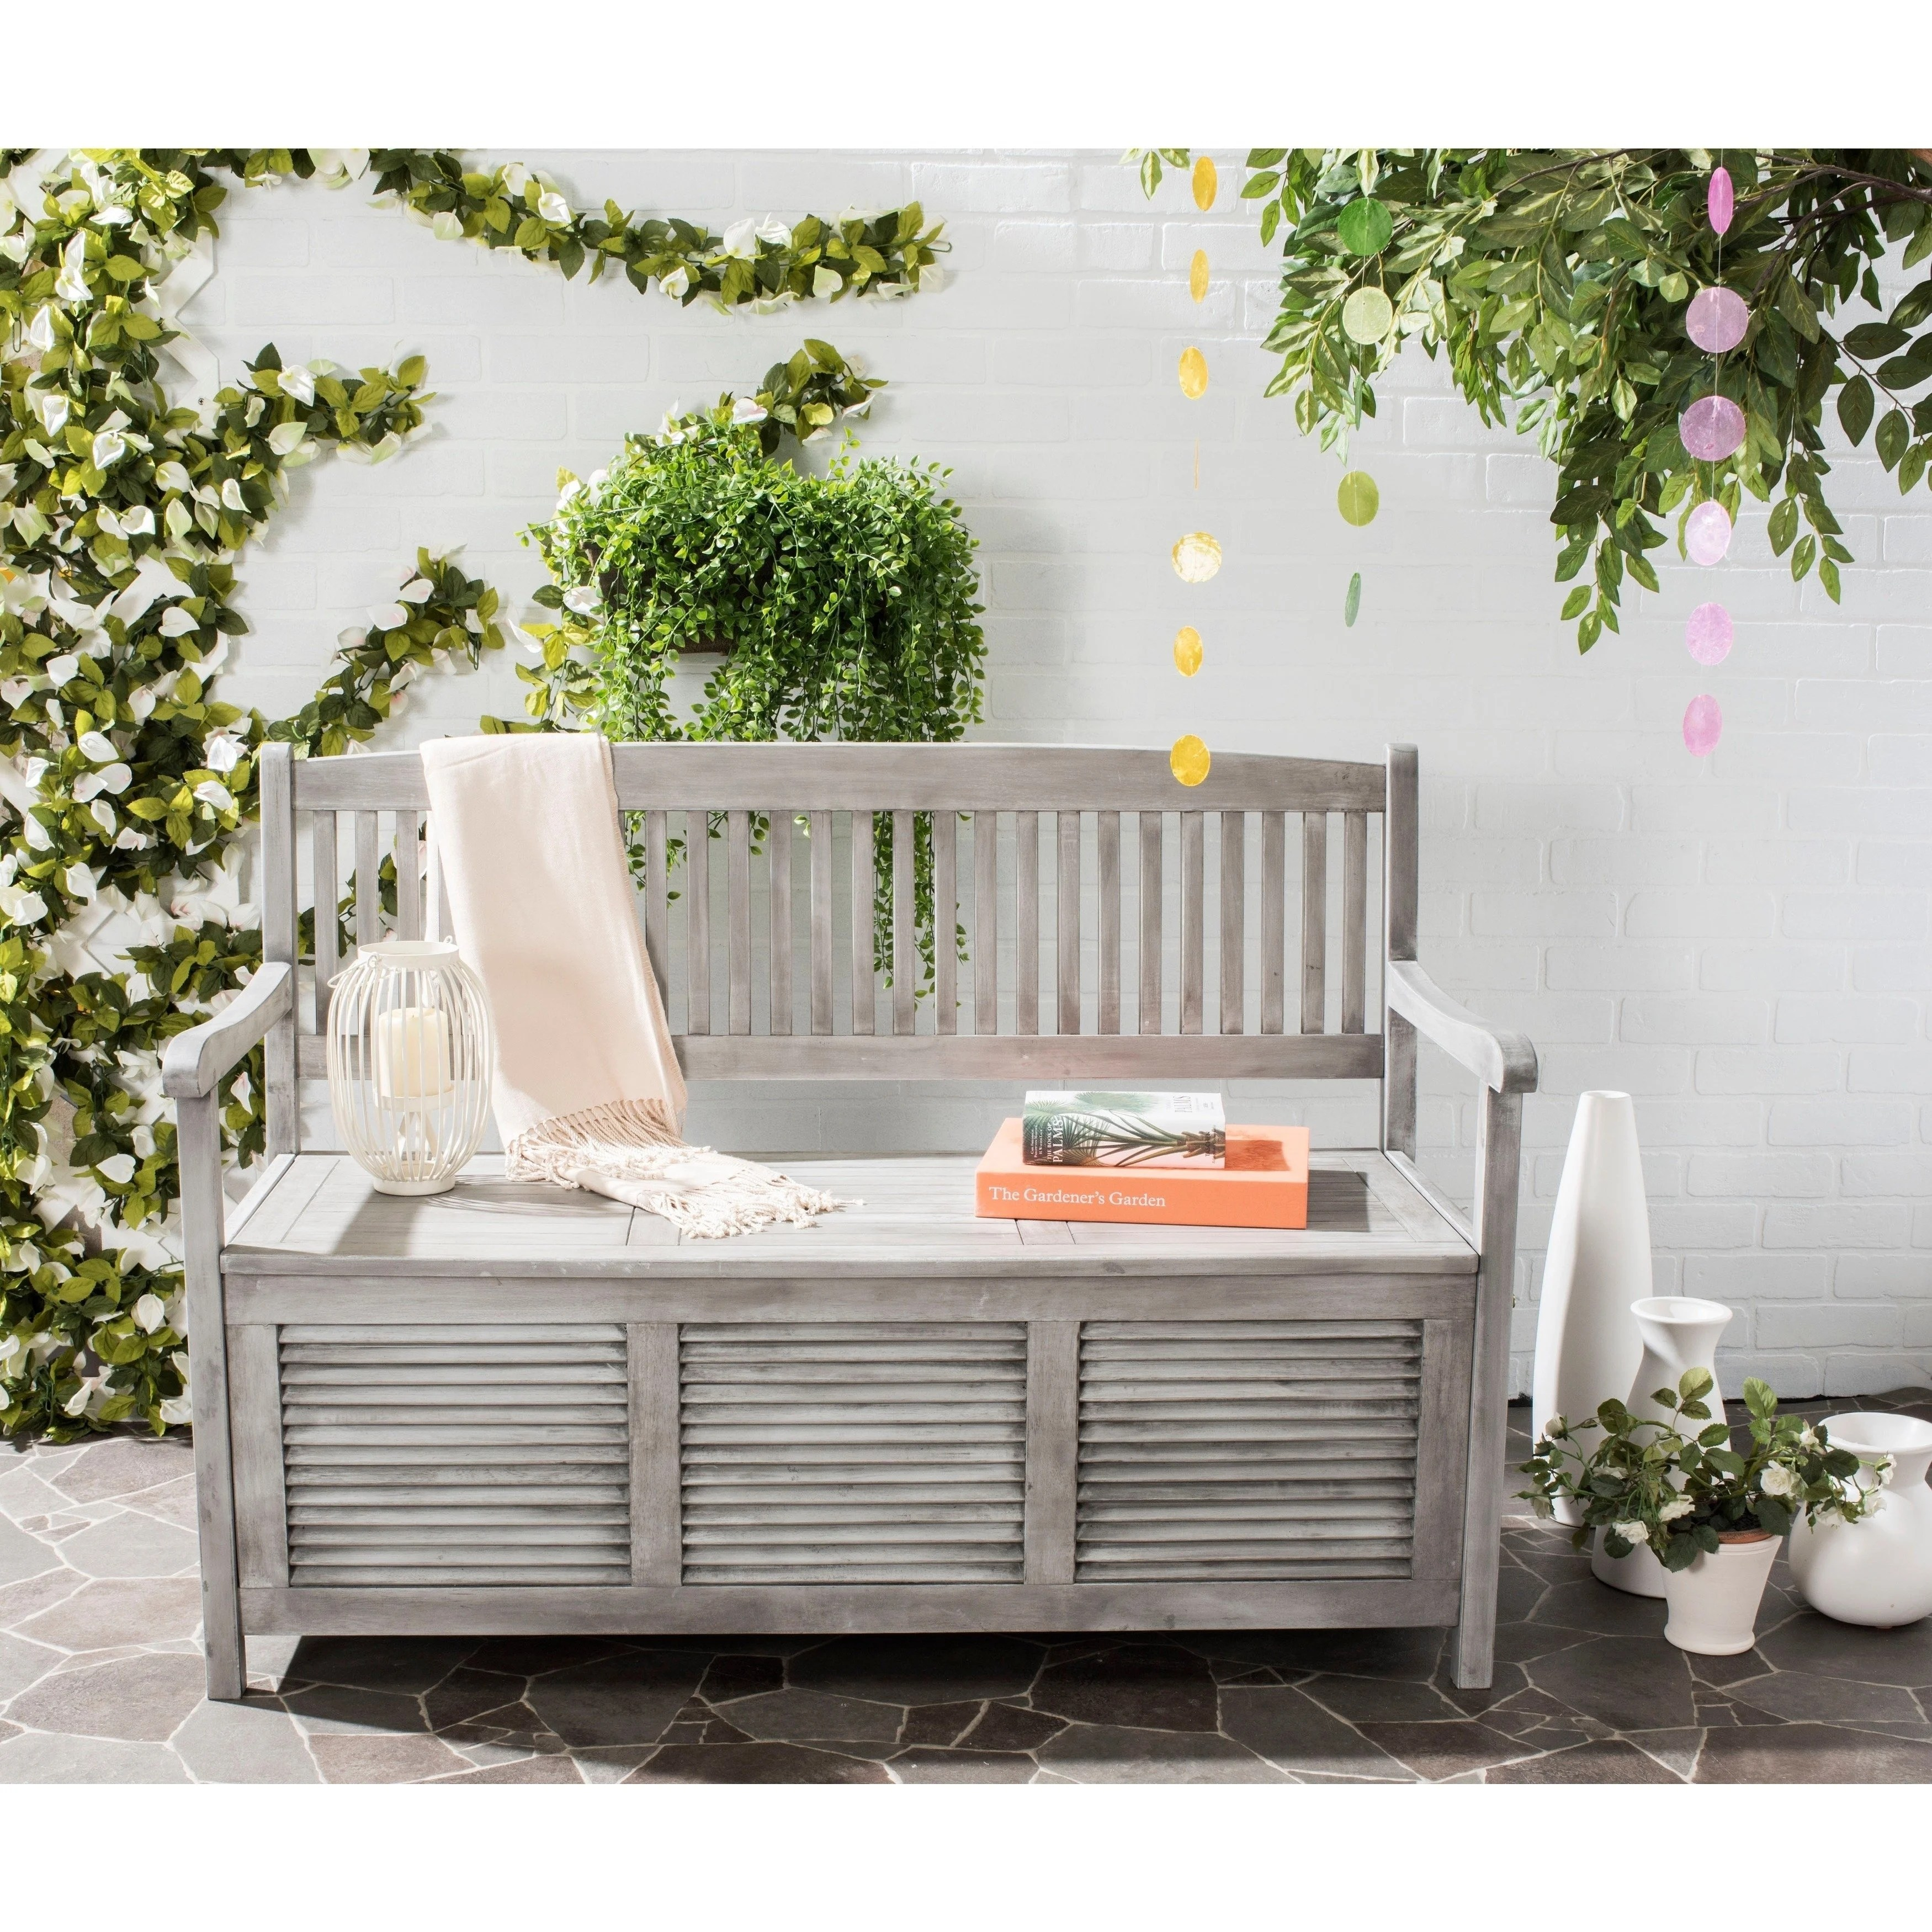 Lounge Clearance Brisbane Safavieh Outdoor Living Brisbane Grey Storage Bench 50